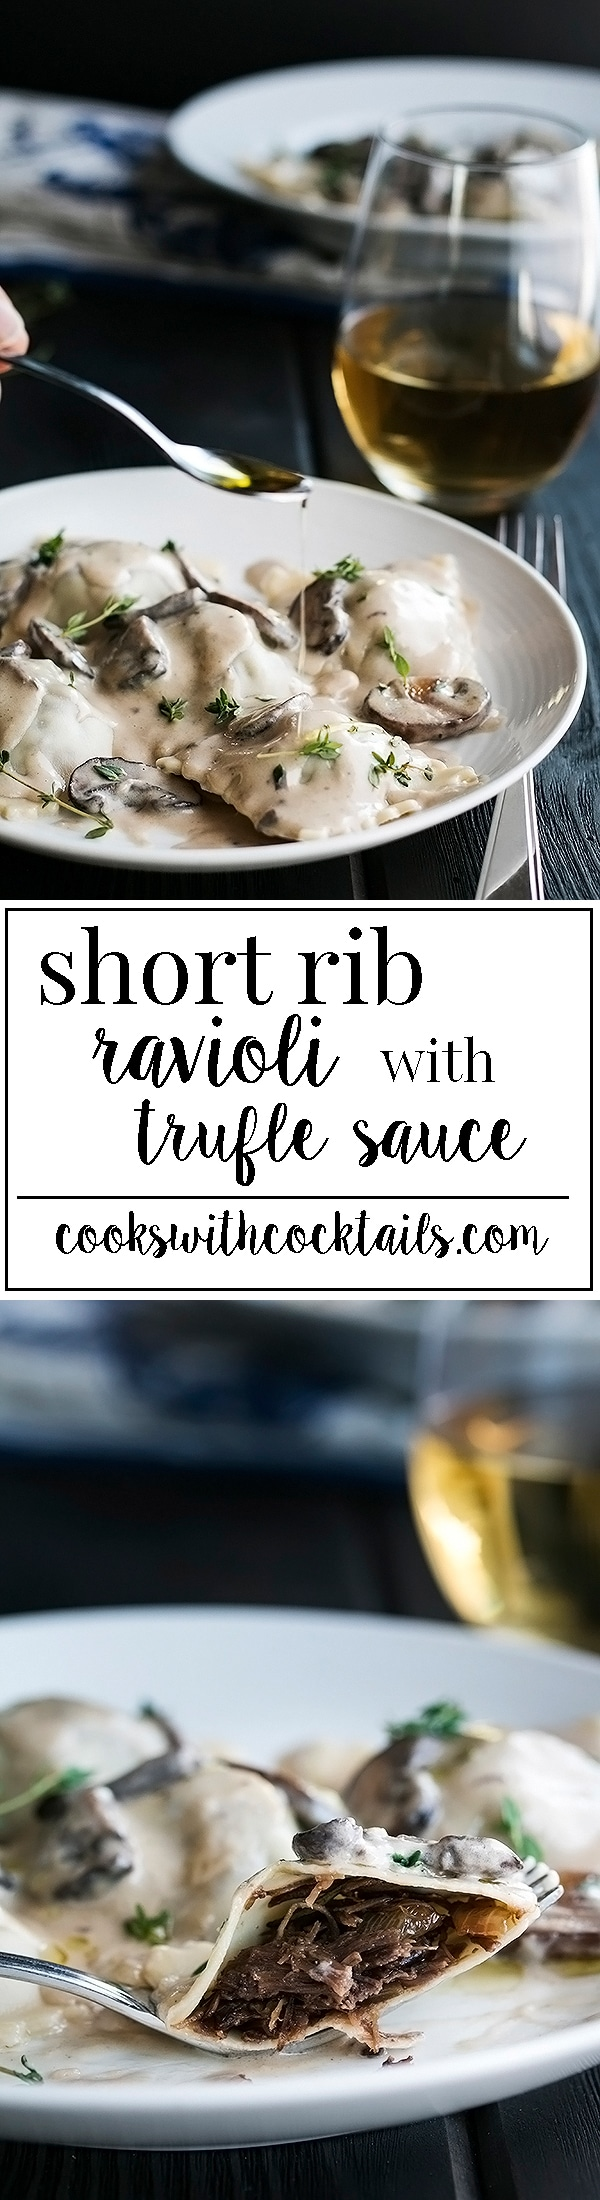 Homemade Short Rib Ravioli - A labour of love, well worth the time to make, and not as hard as you think!  The filling is easy, made with instant pot short ribs and caramelized onions that gets stuffed into tender homemade pasta pockets and covered in the most delectable sauce!#instantpotrecipe #shortribs #homemadepasta #homemaderavioli #cookswithcocktails